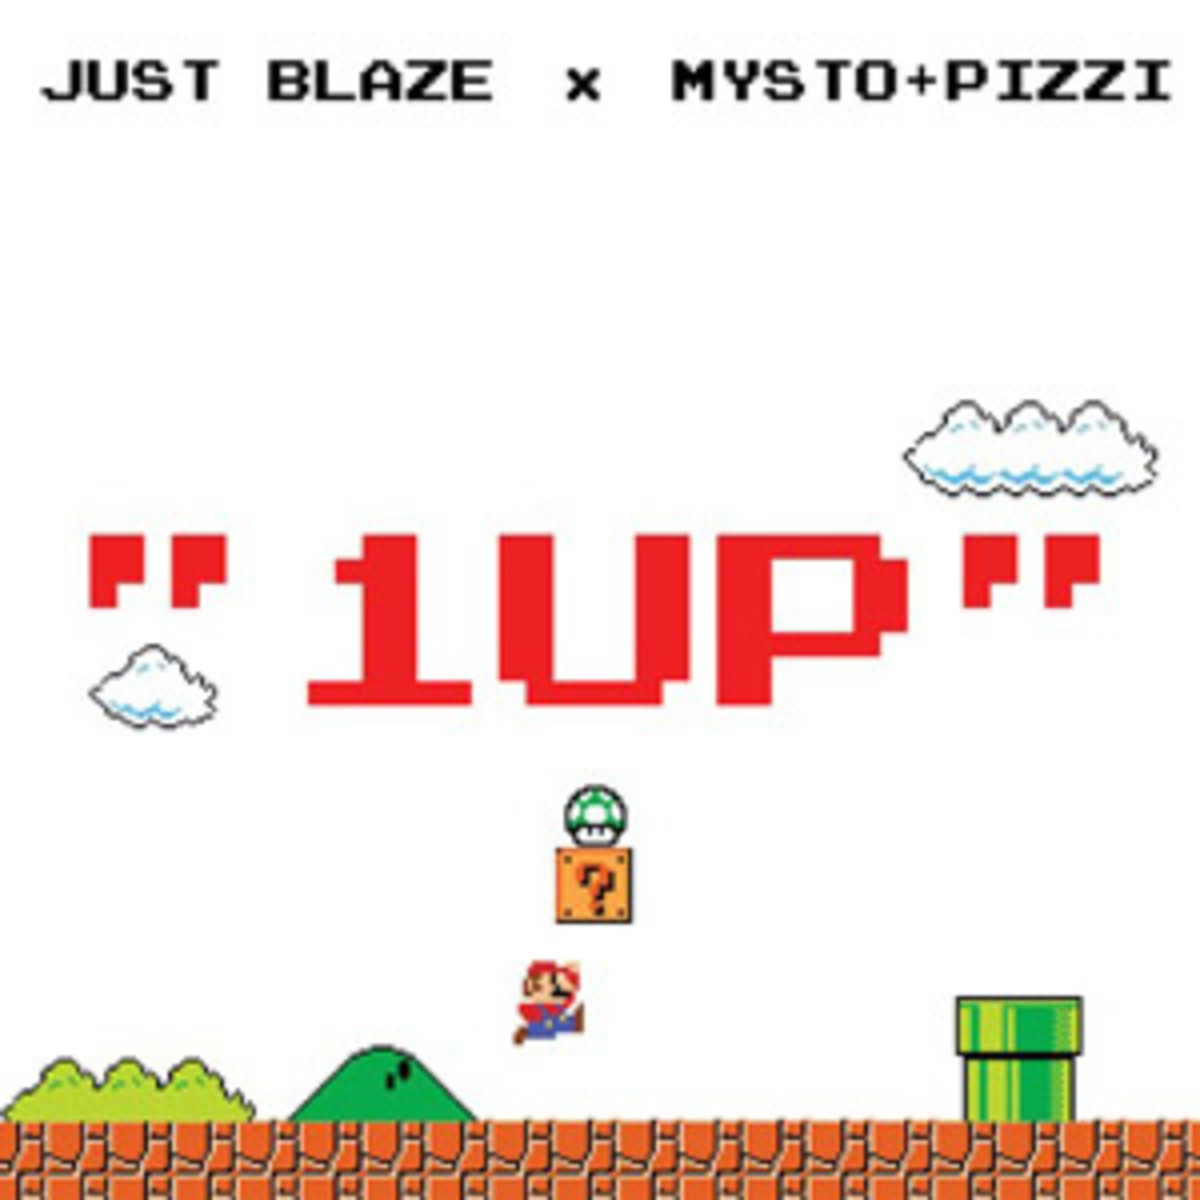 Mysto & Pizzi and legendary producer and DJ Just Blaze called ³1UP²